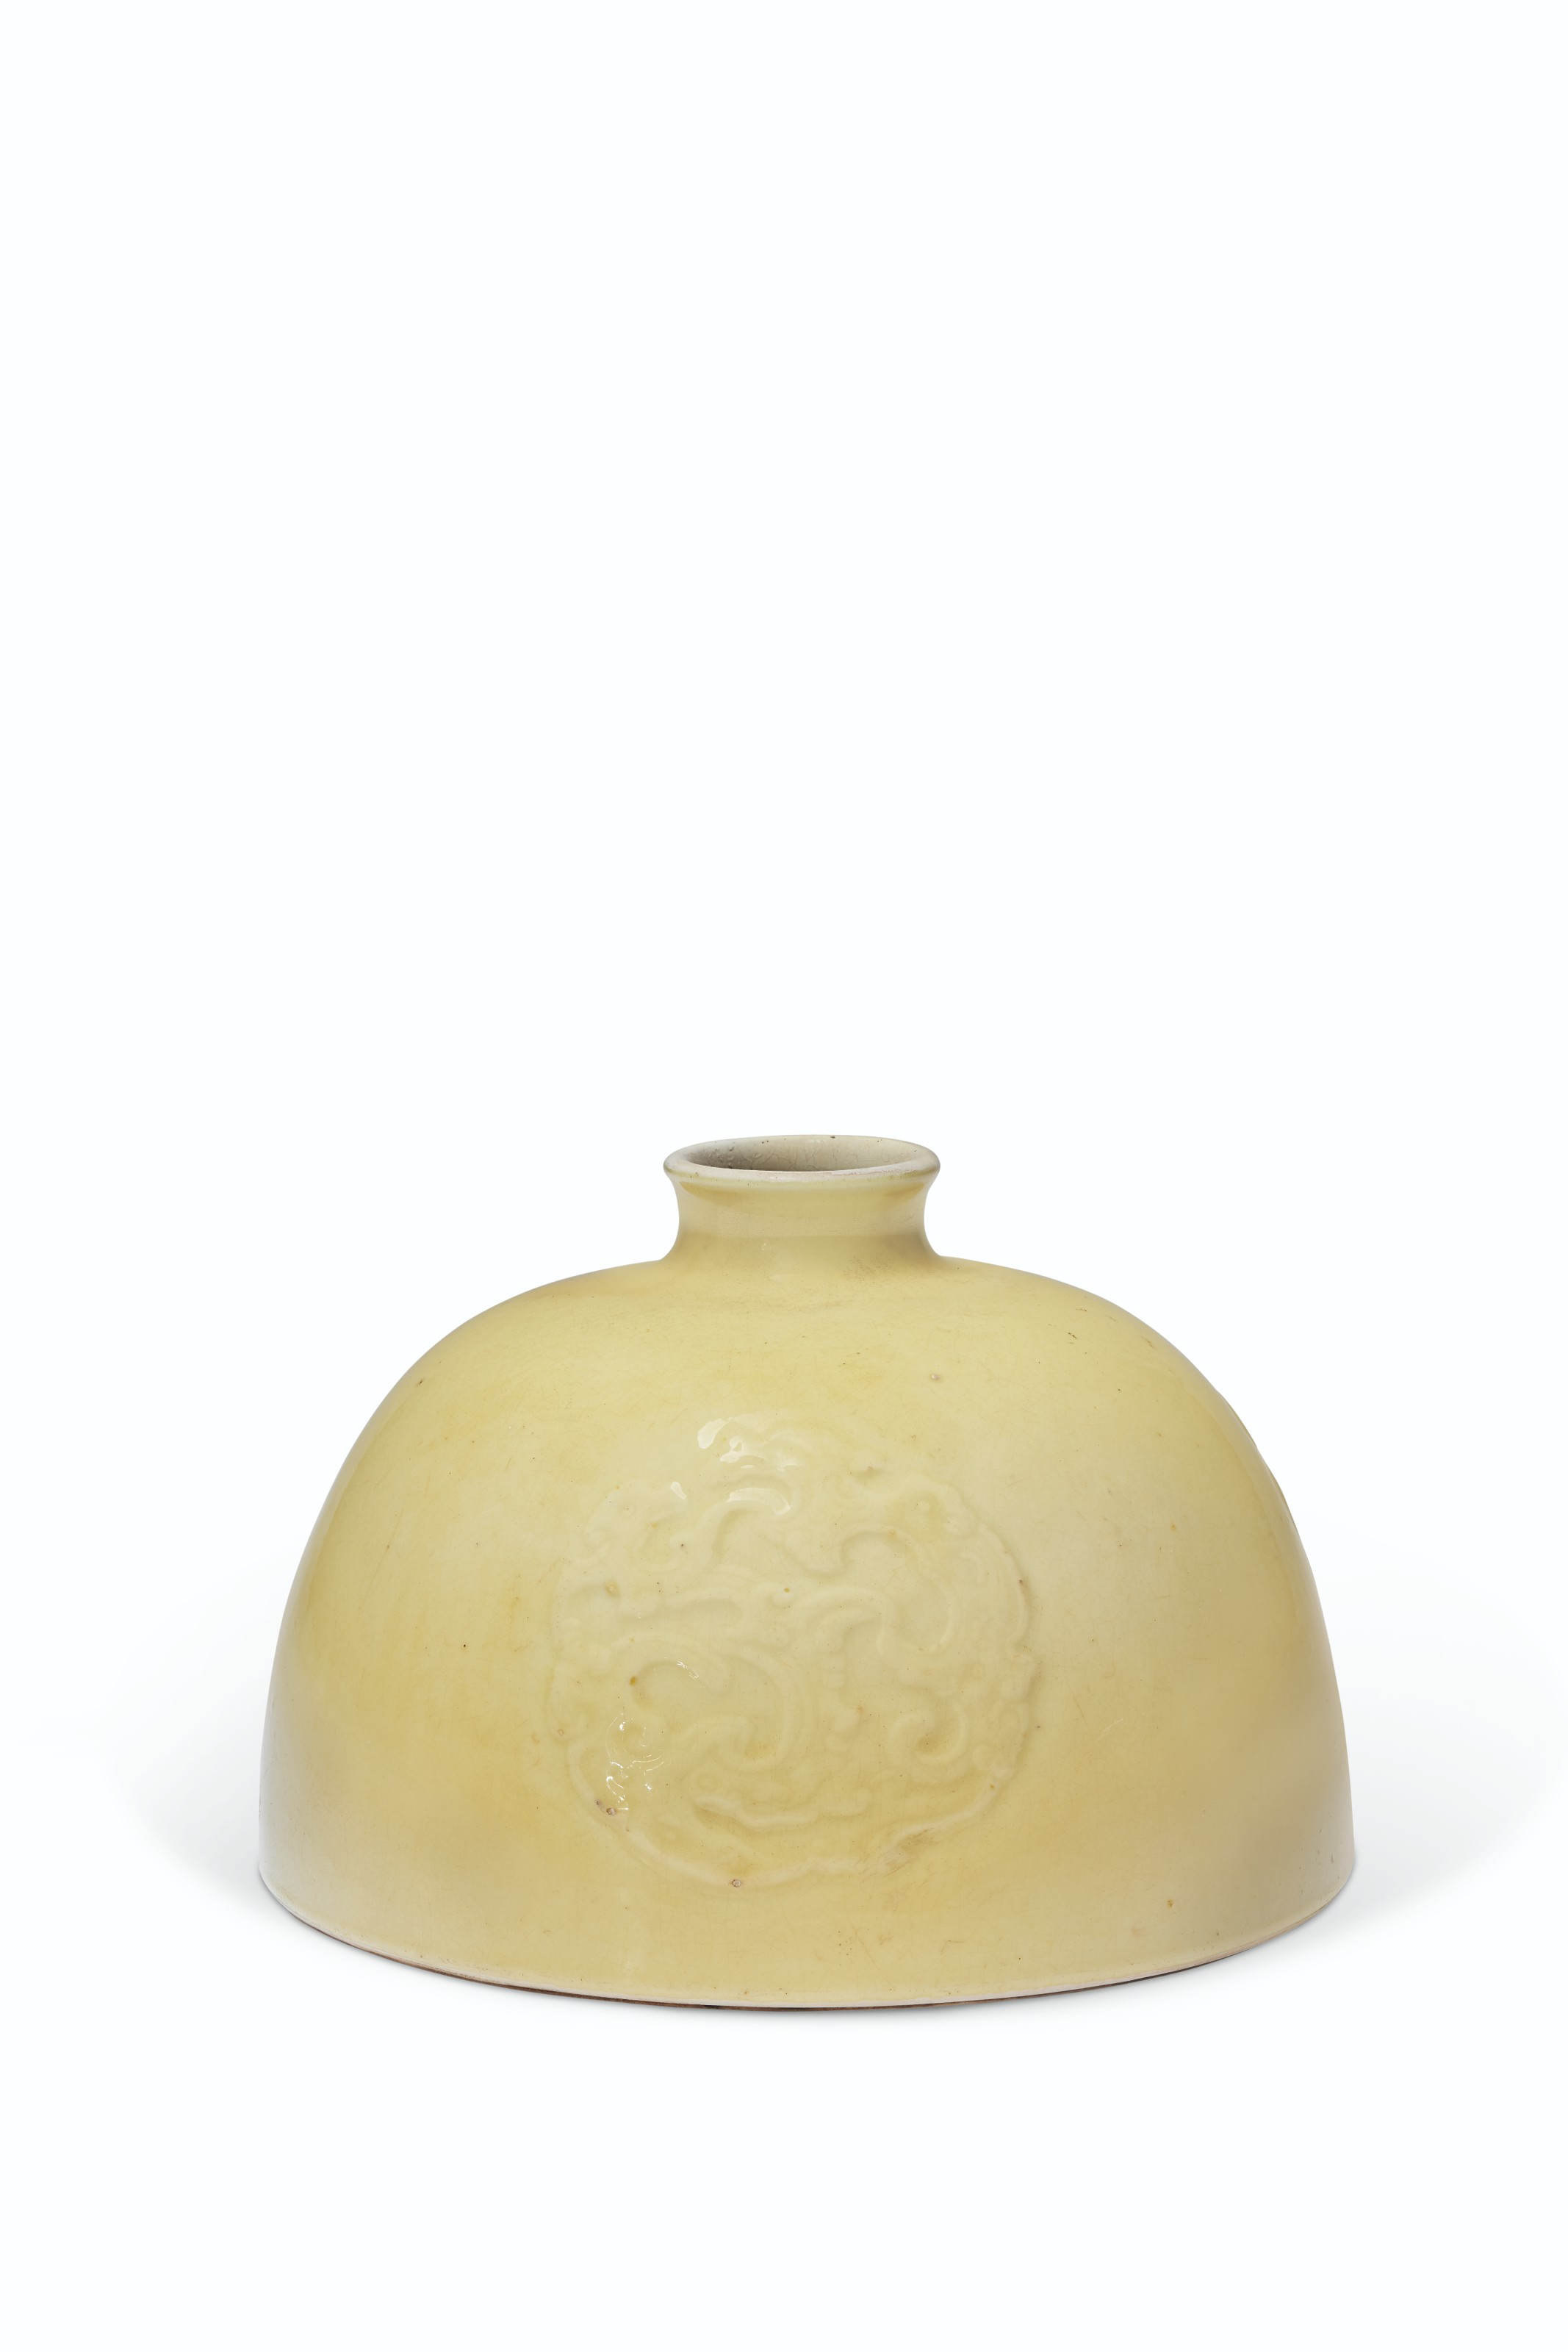 A VERY RARE YELLOW-GLAZED RELIEF-DECORATED WATER POT, TAIBAI ZUN